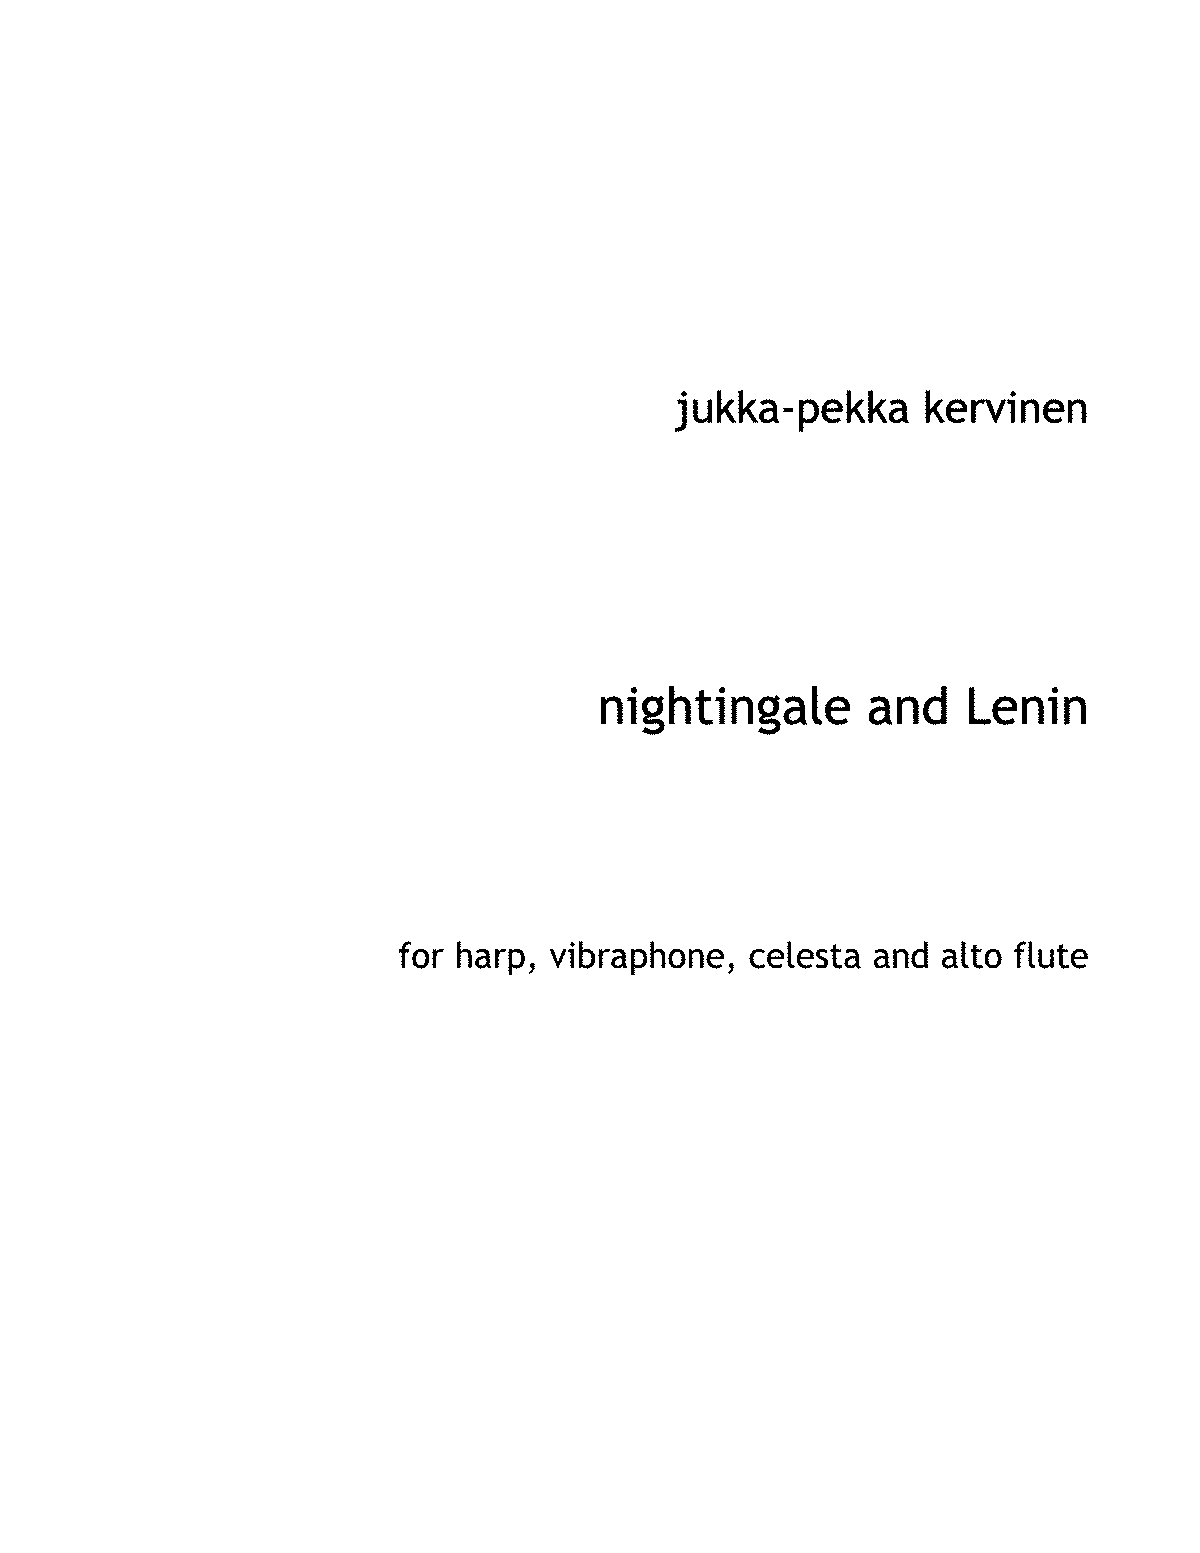 WIMA.6d2a-kervinen nightingaleandlenin.pdf